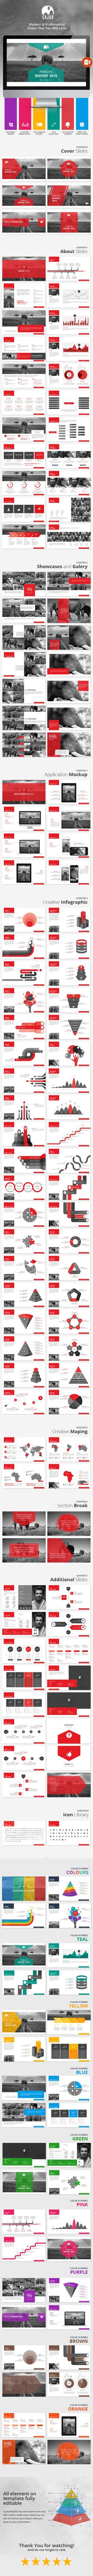 Gajah - Annual Report Powerpoint Template - PowerPoint Templates Presentation Templates